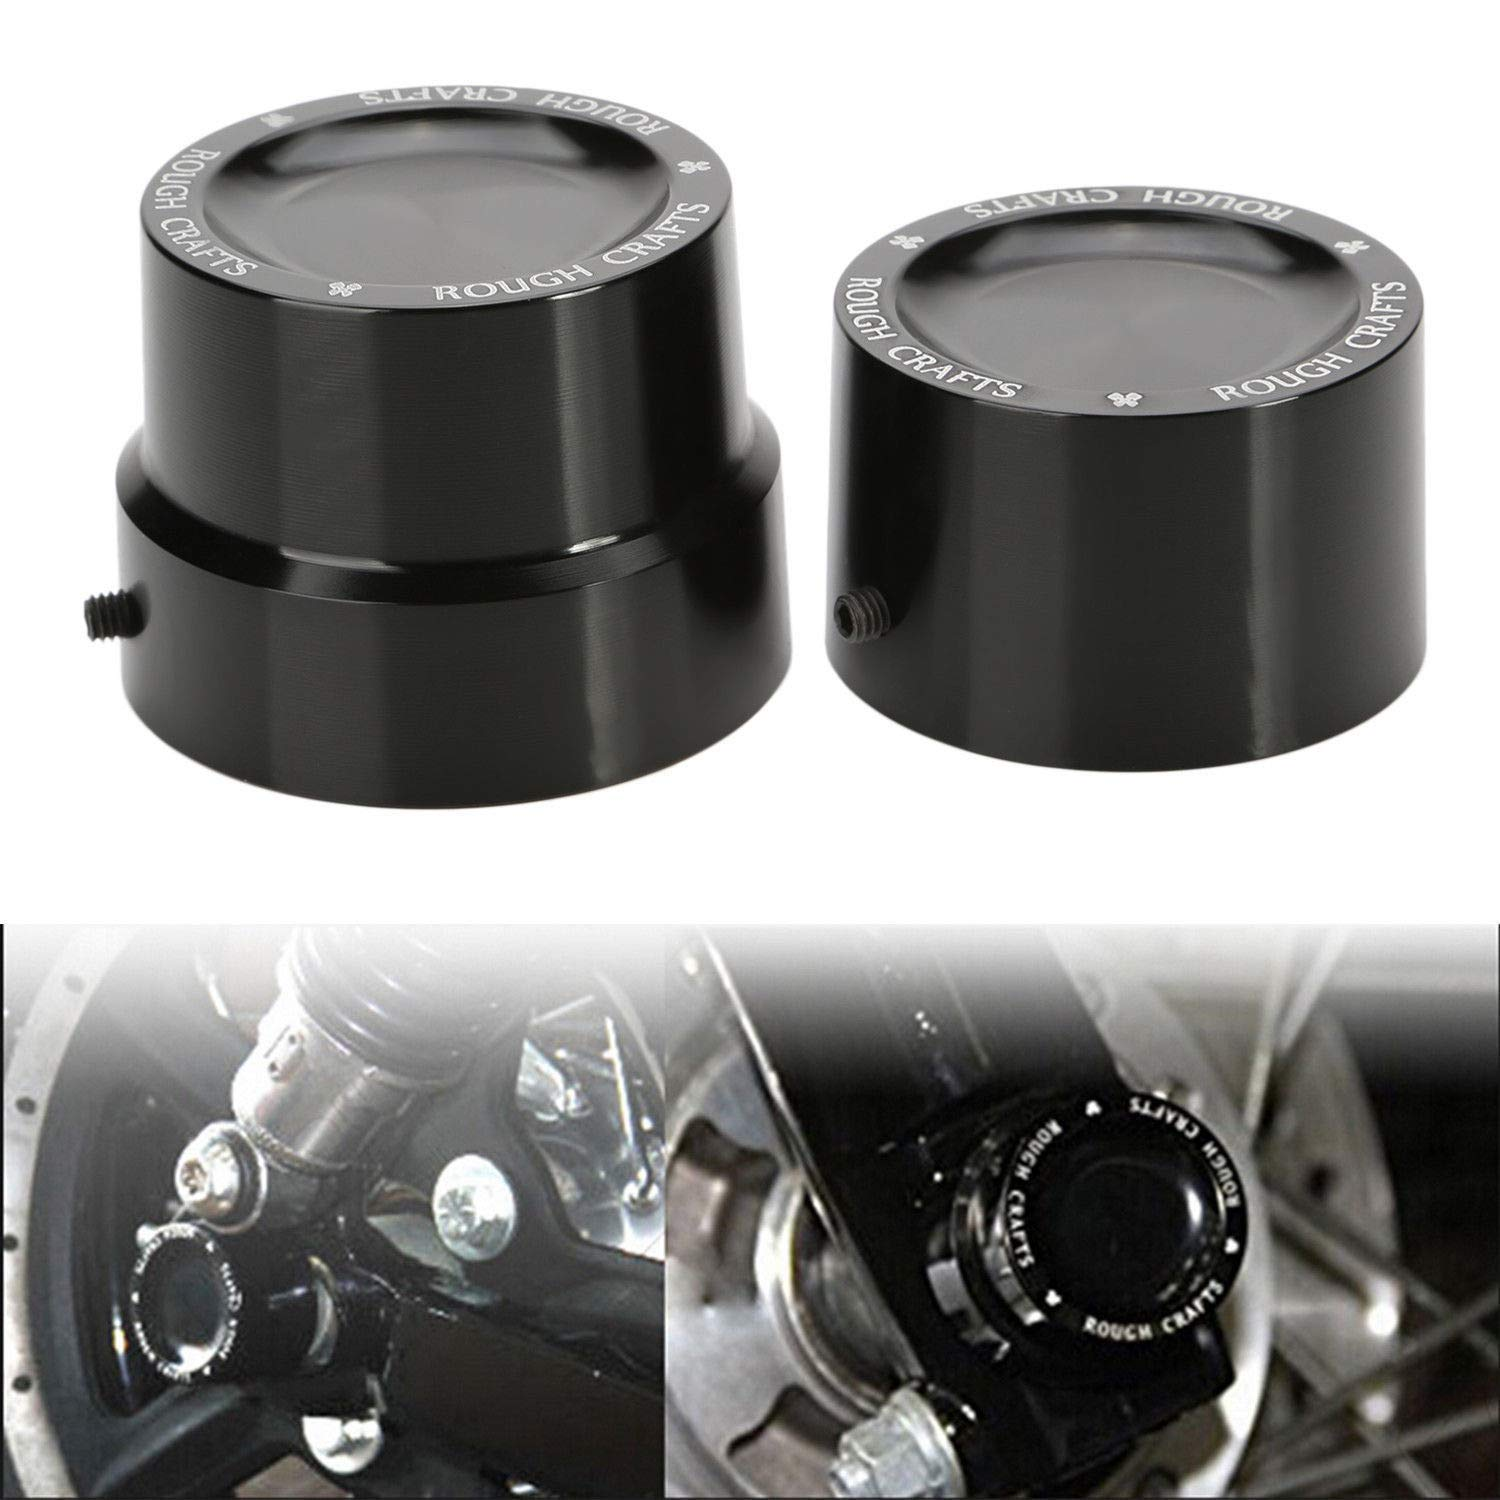 Ocamo 2pcs Rear Axle Nut Covers Bolt Kit Harley XL1200 XL883 Dyna Touring V-Rod